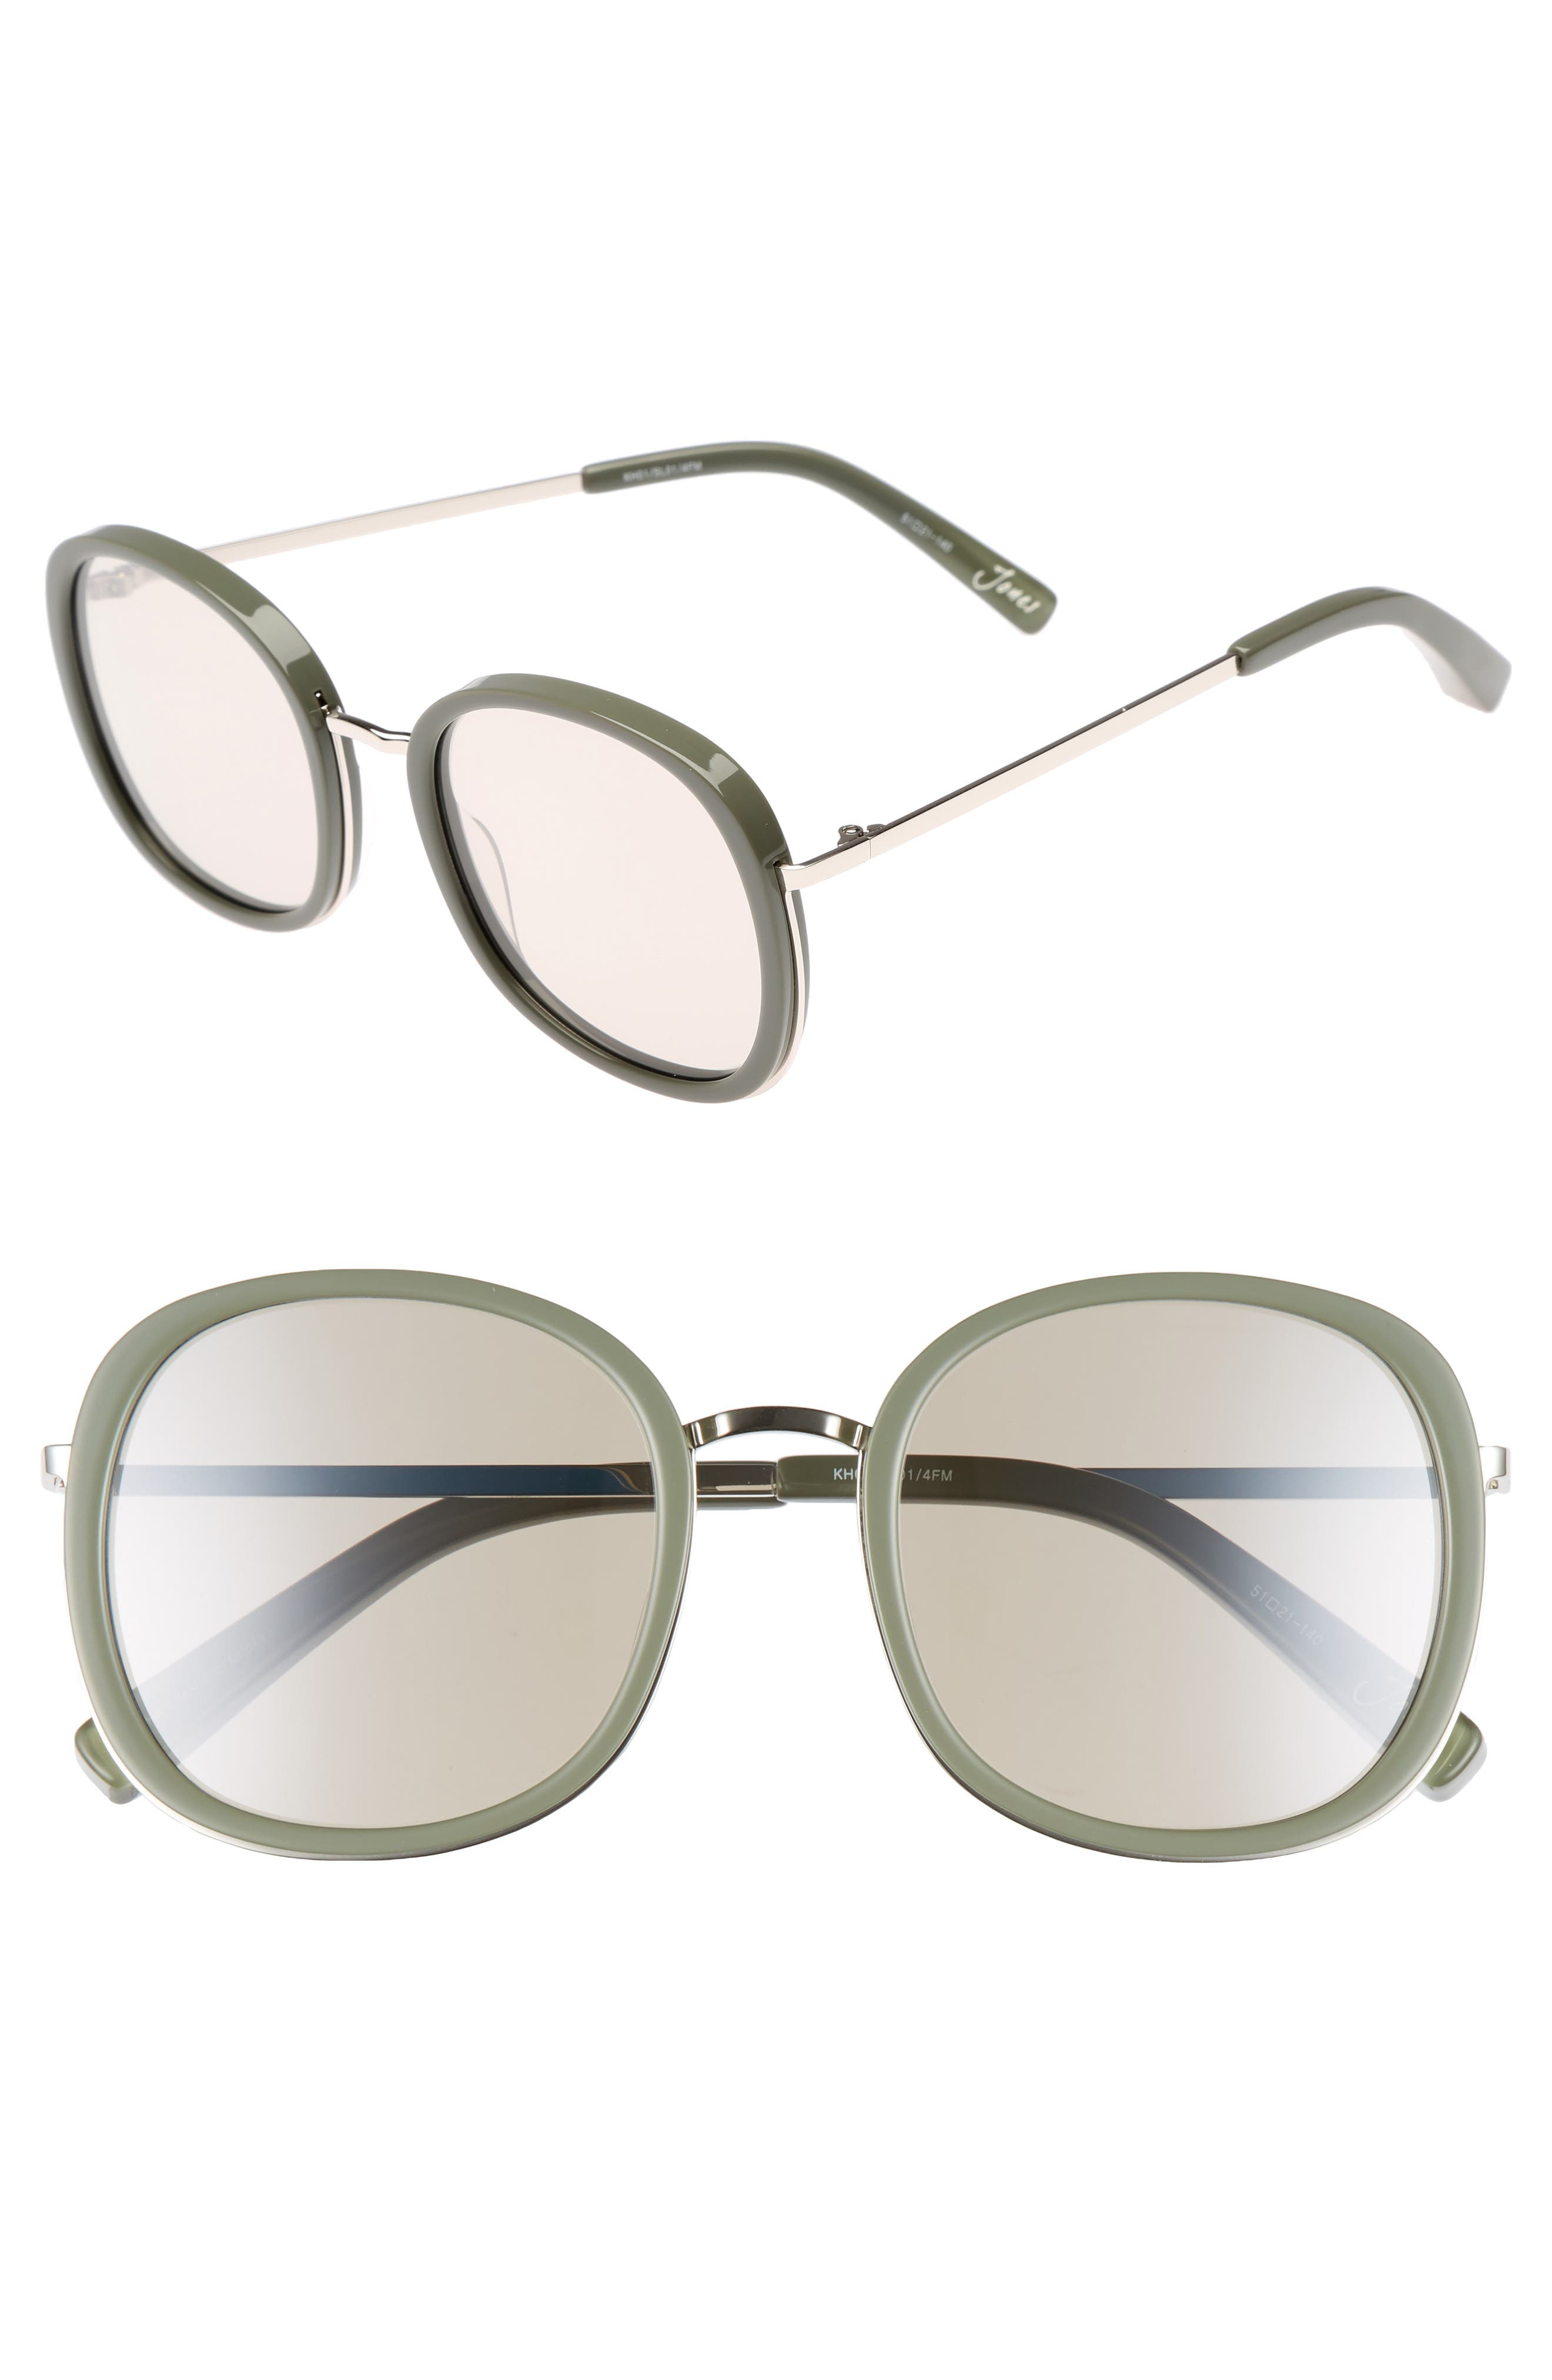 Jones 51mm Round Sunglasses,                             Main thumbnail 1, color,                             KHAKI AND SILVER